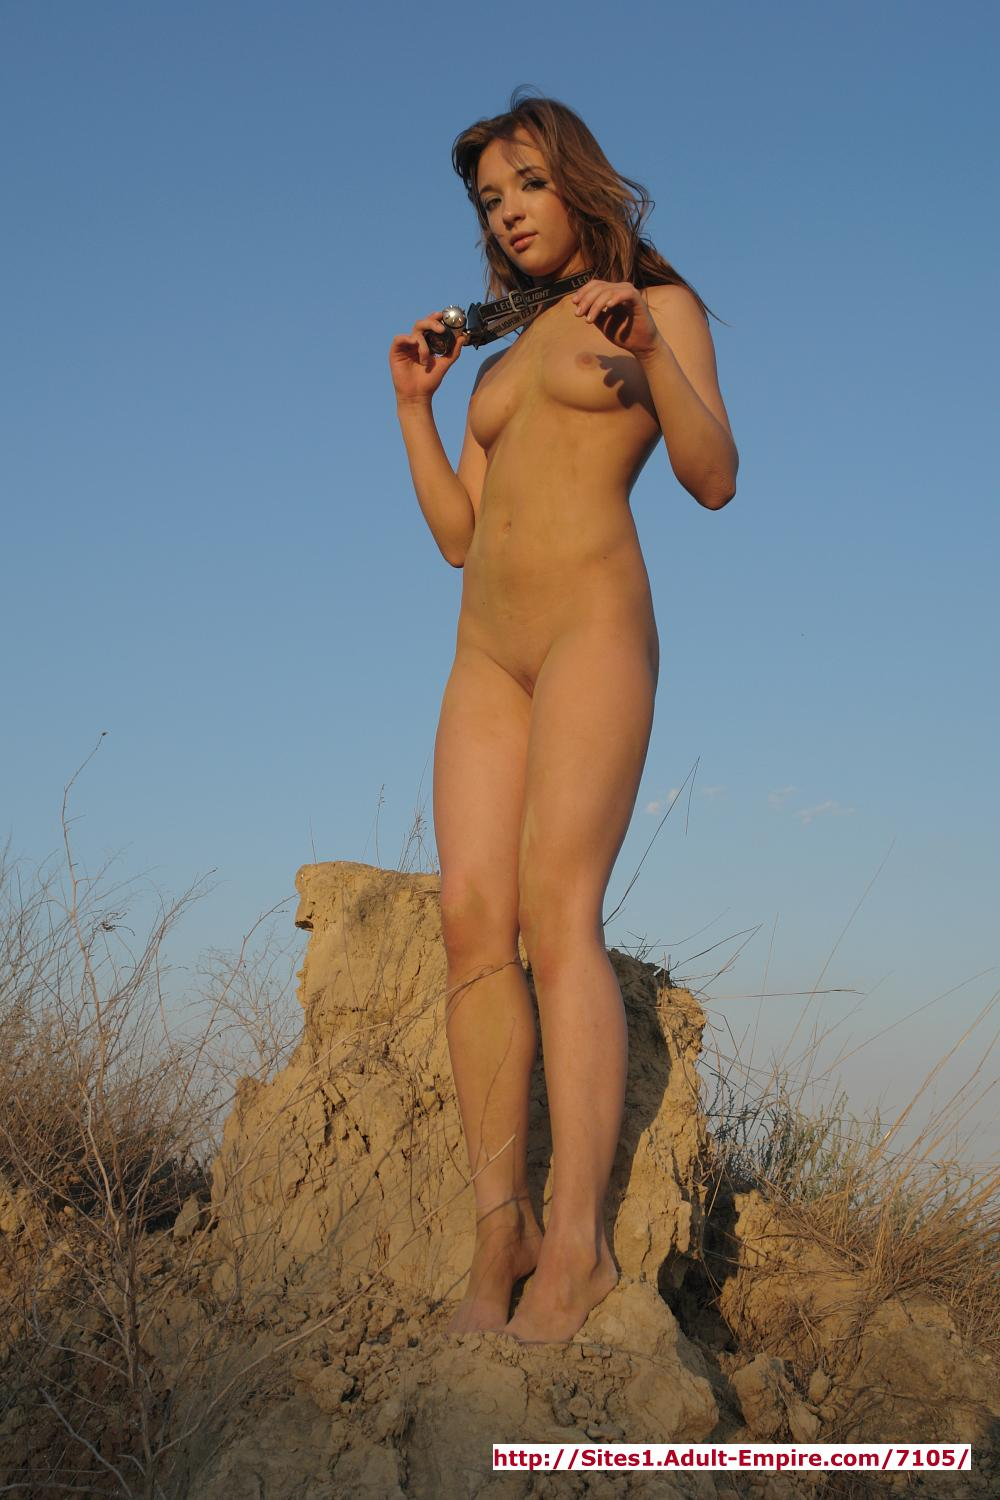 Now I'm into posing (especially nude ;) maybe I am exhibitionist a bit ...